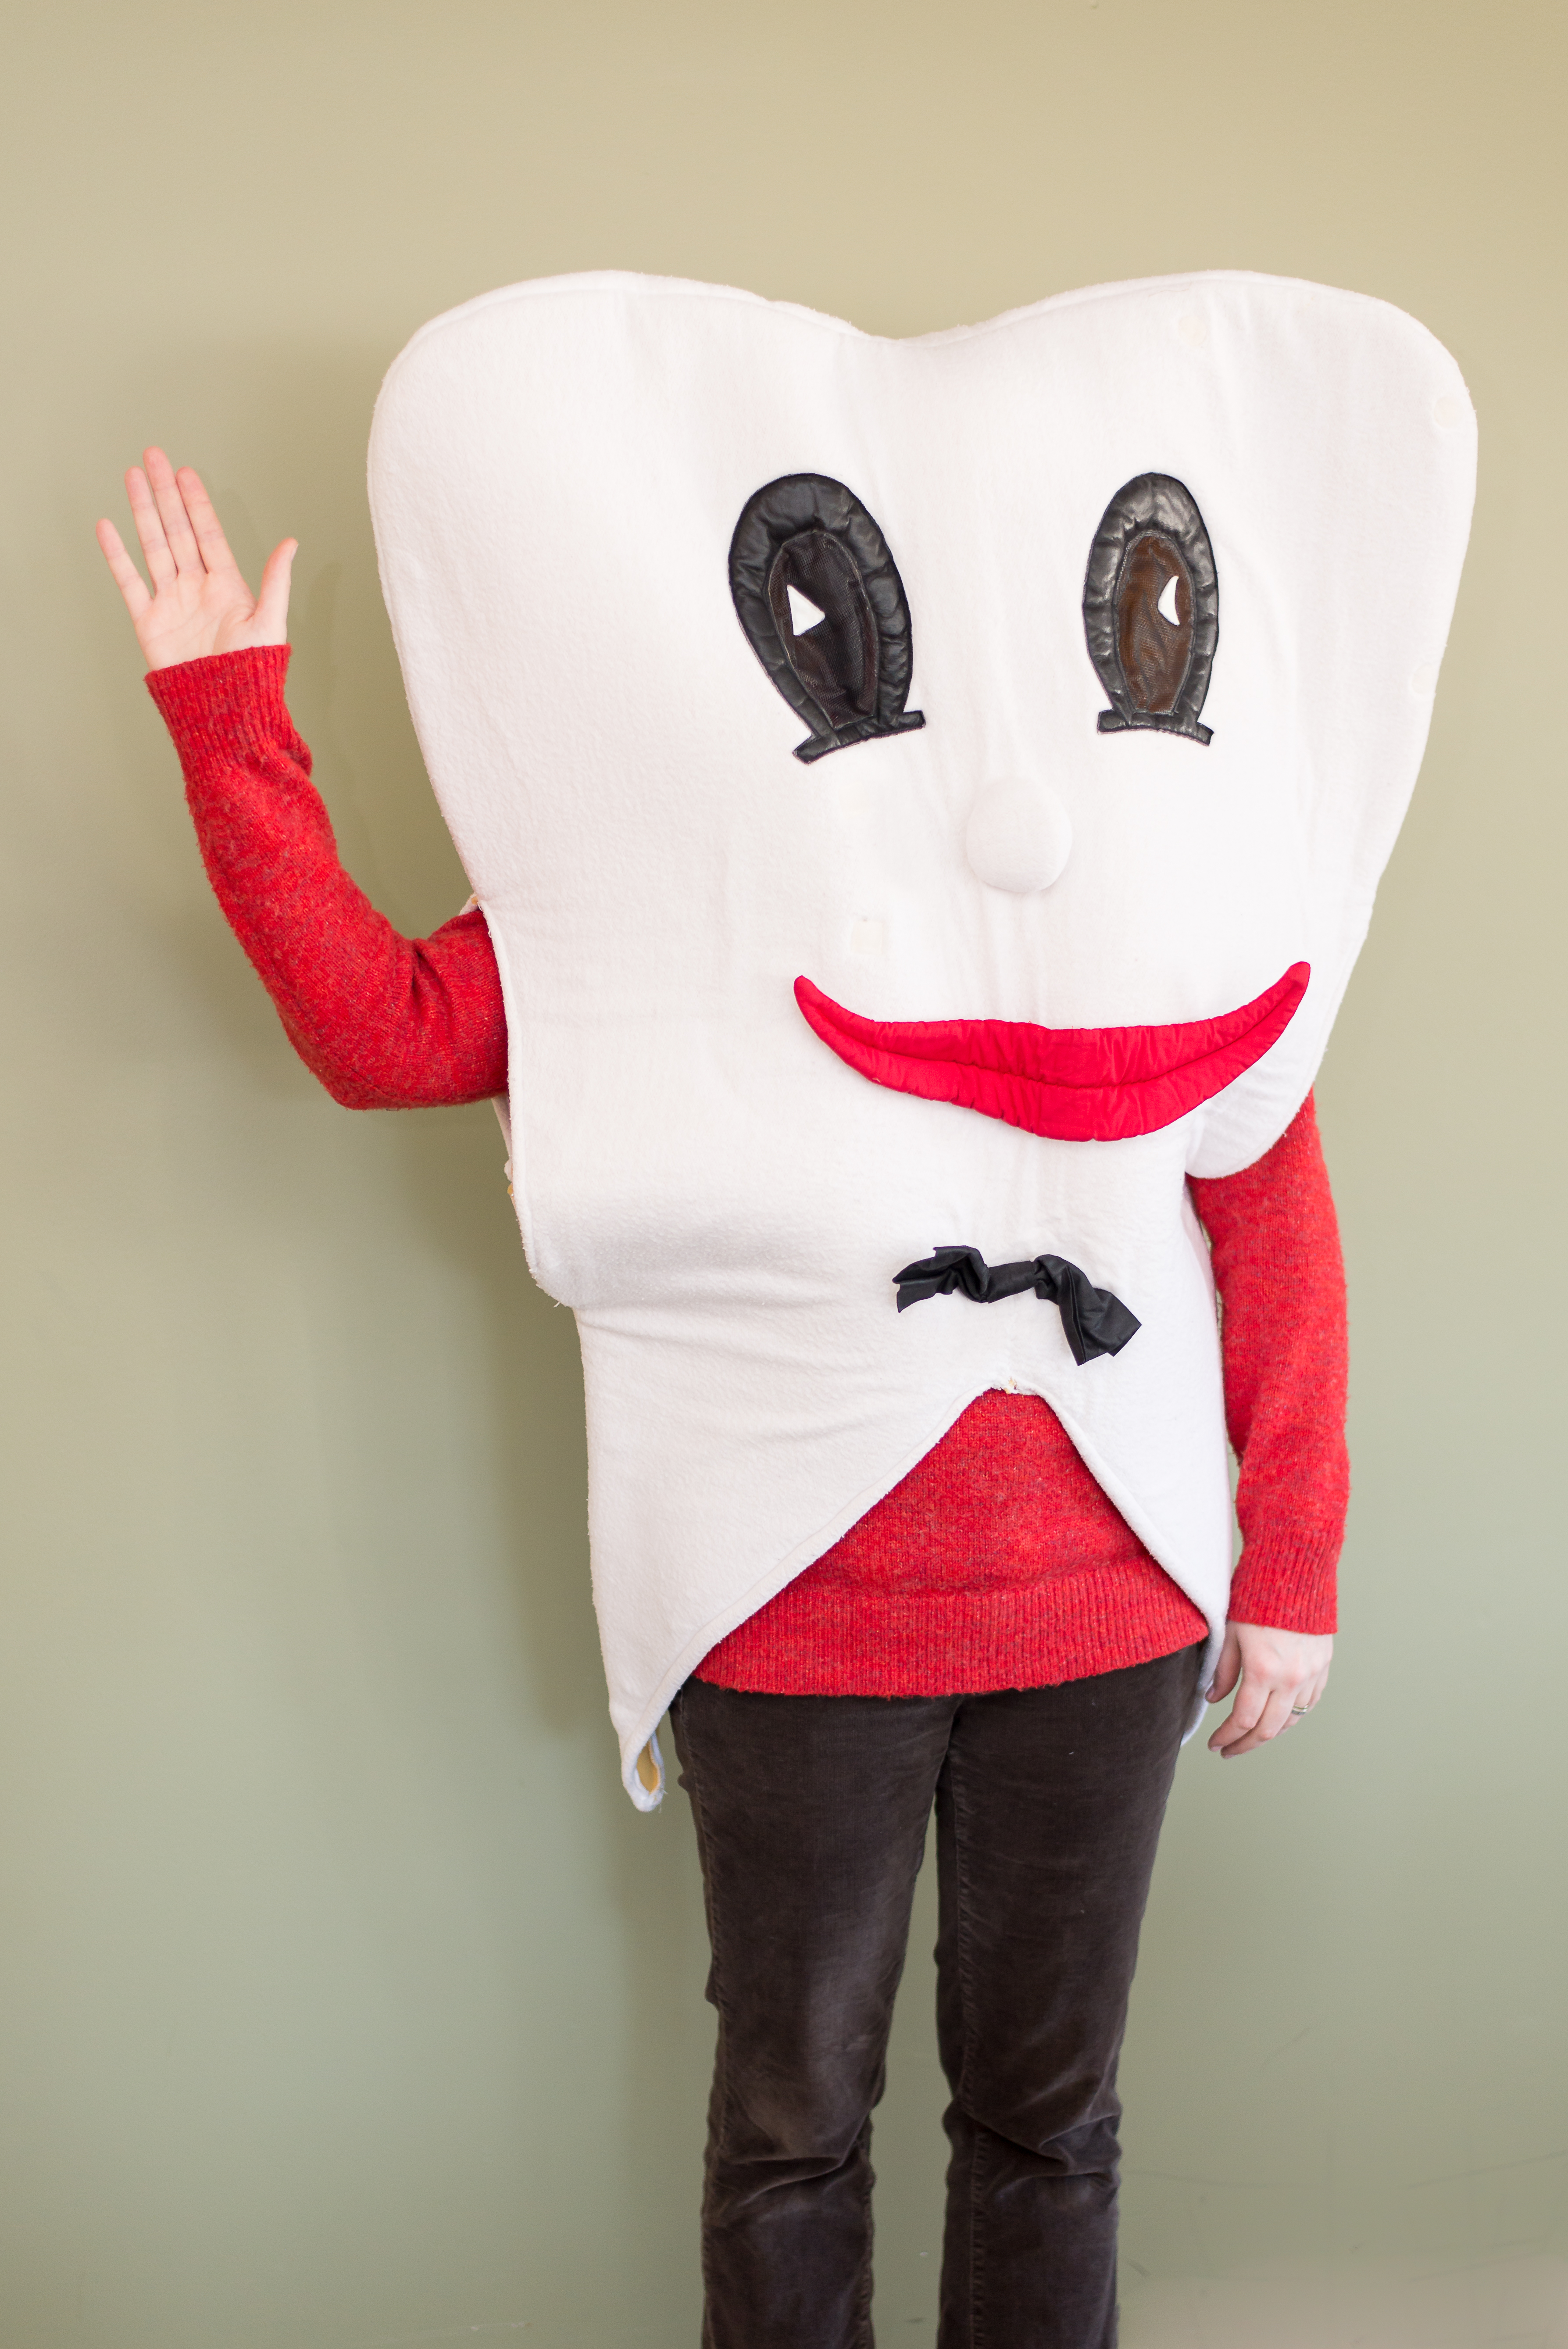 Photo of person in tooth costume